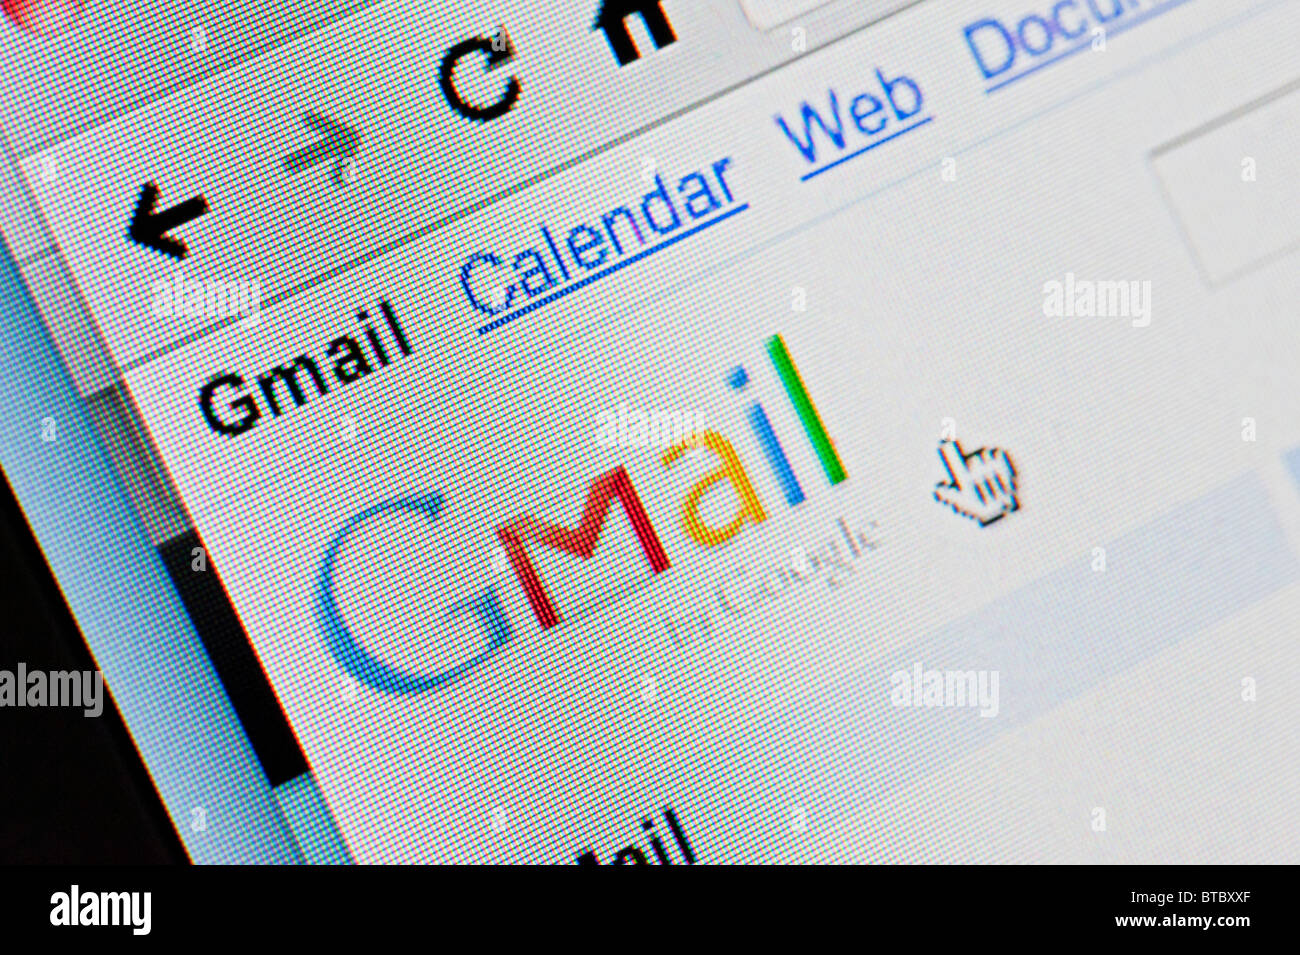 Screenshot from homepage of Google Gmail email website - Stock Image